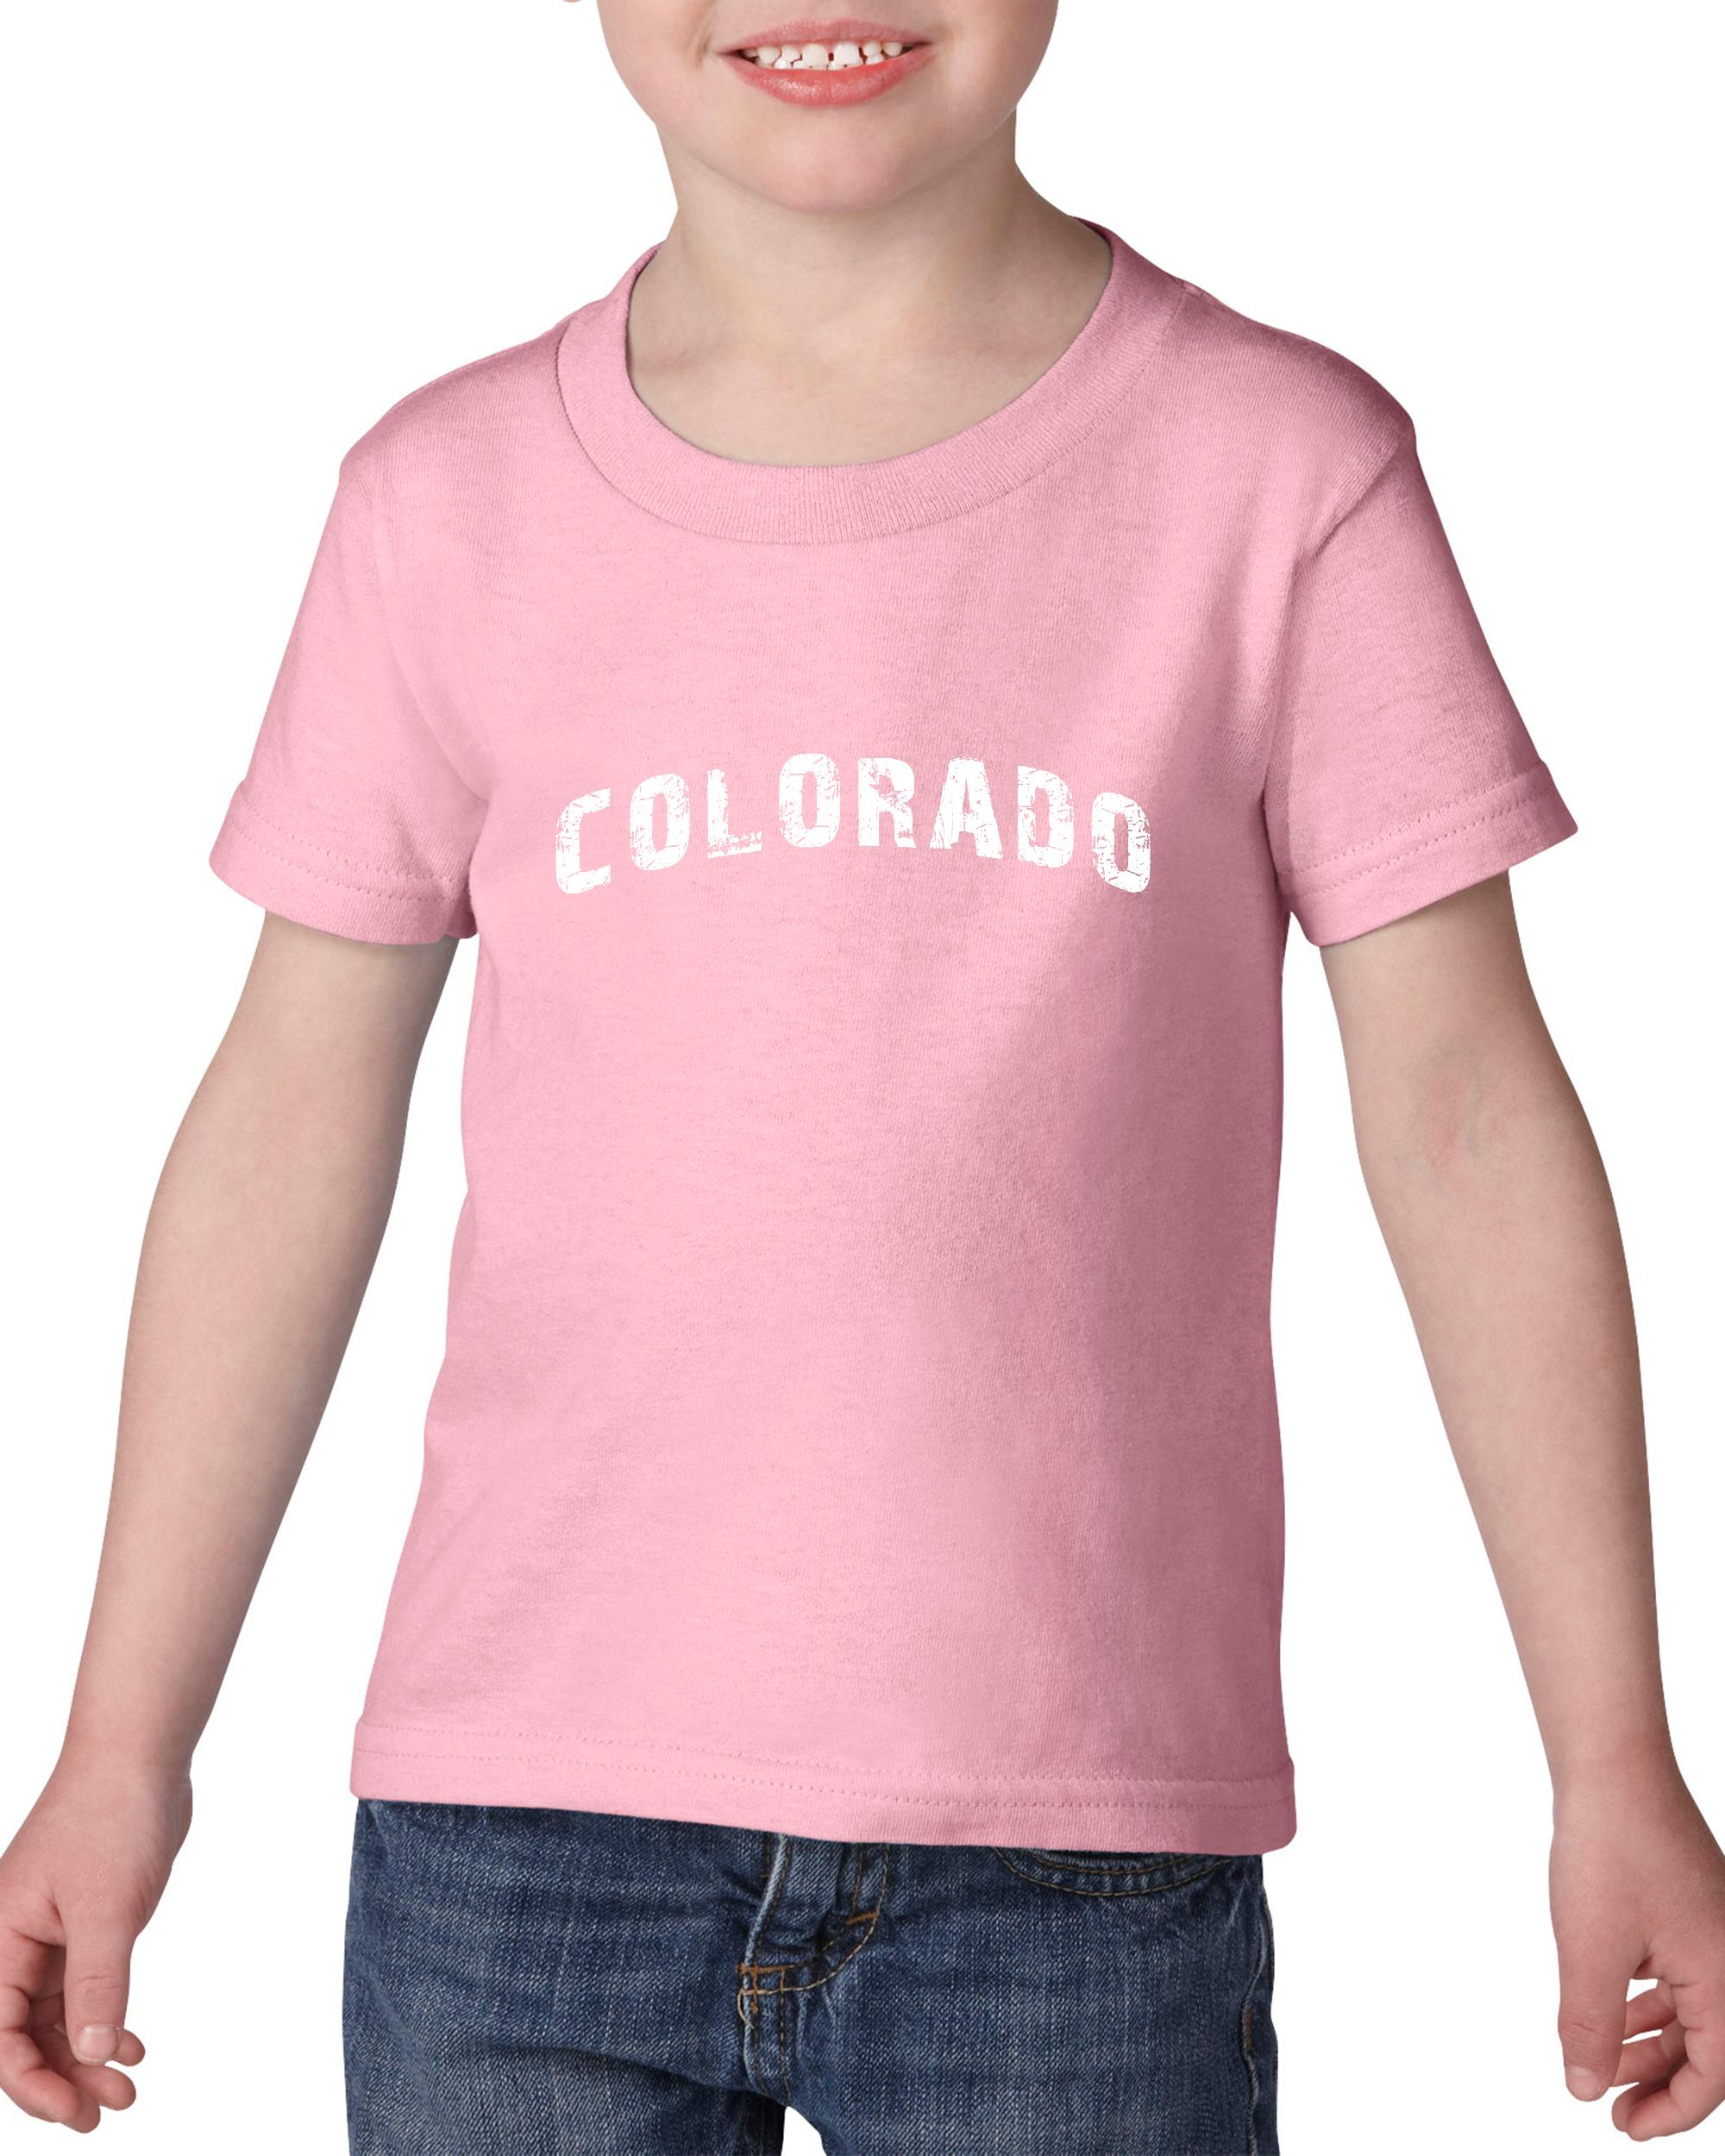 Artix Colorado Home of CU Denver UCCS University of Springs Map Flag Heavy Cotton Toddler Kids T-Shirt Tee Clothing